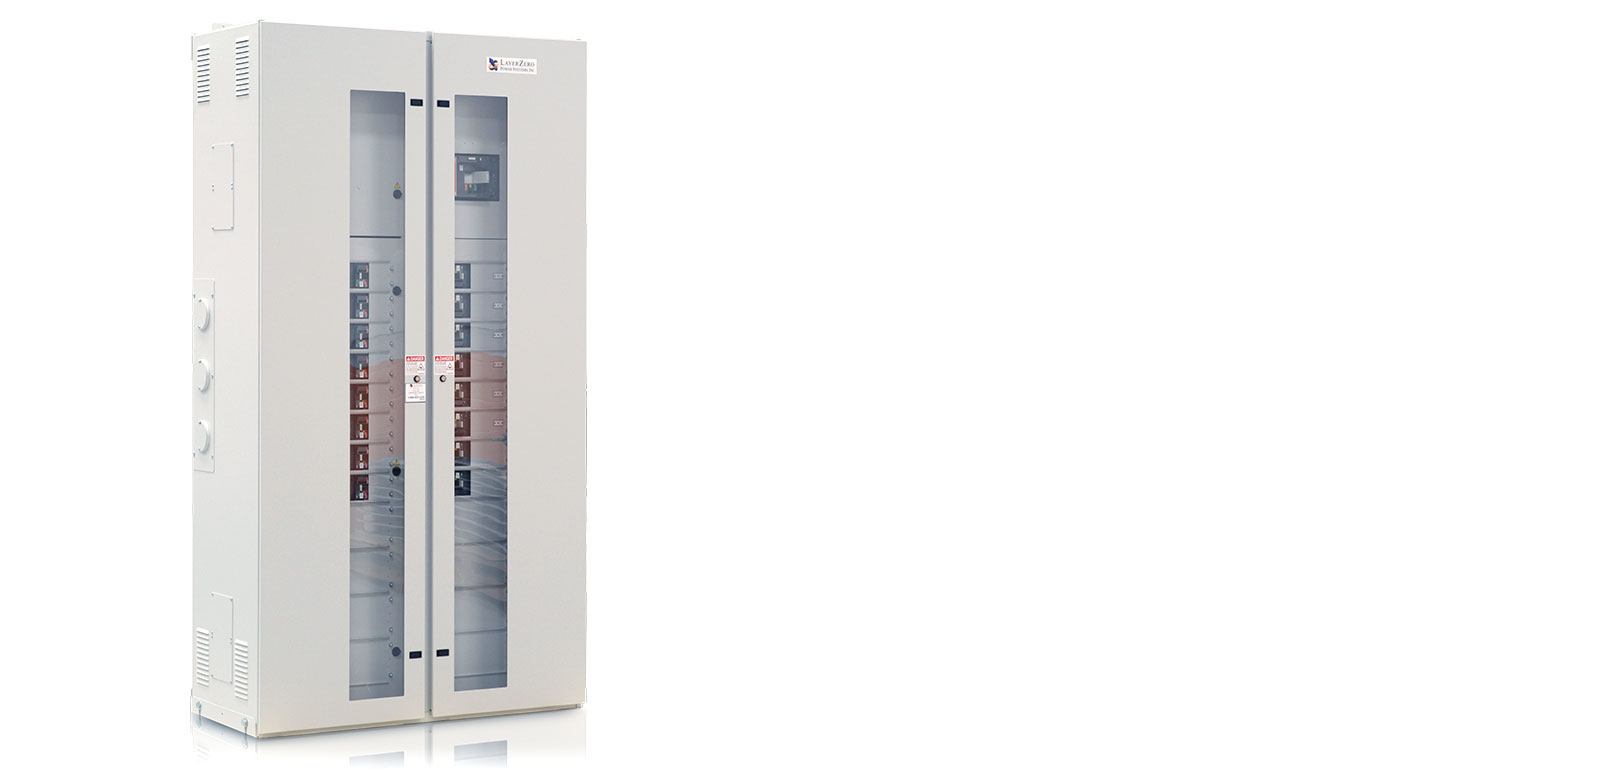 Series 70: ePanel-HD2 High-Density Wall-Mounted Power Panel